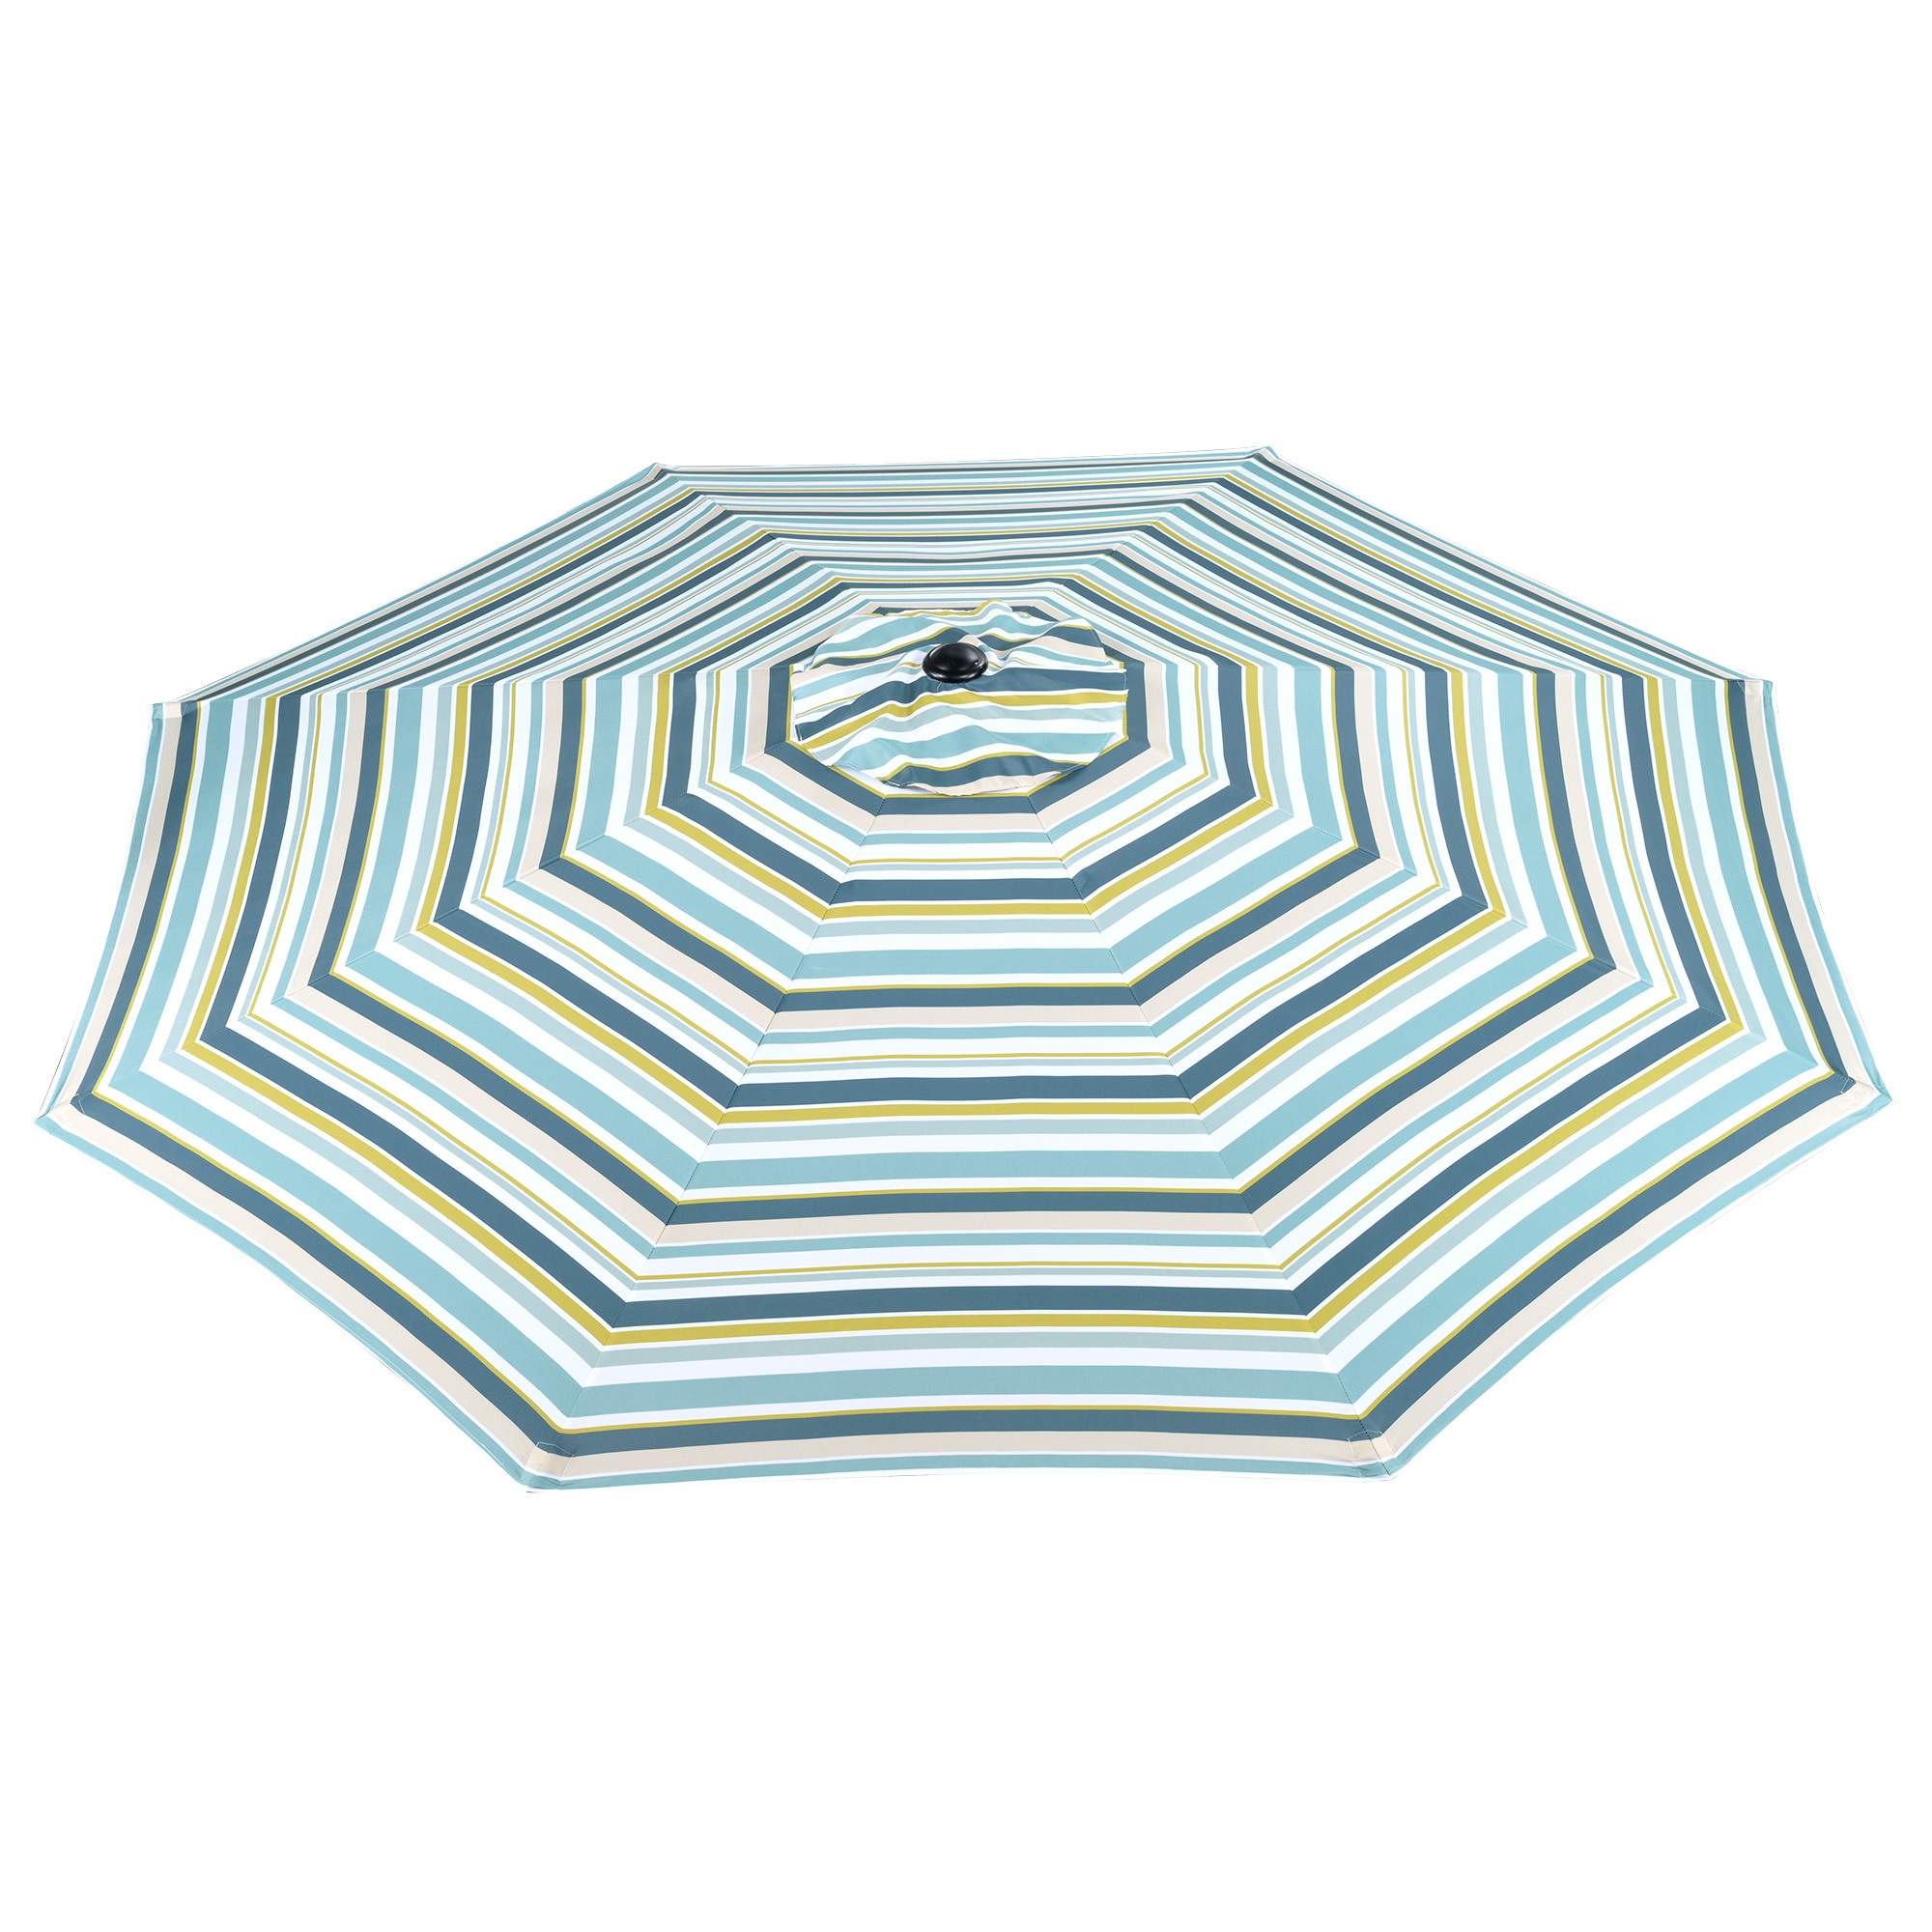 thumbnail 422 - 8'/9'/10'/13' Umbrella Replacement Canopy 8 Rib Outdoor Patio Top Cover Only Opt